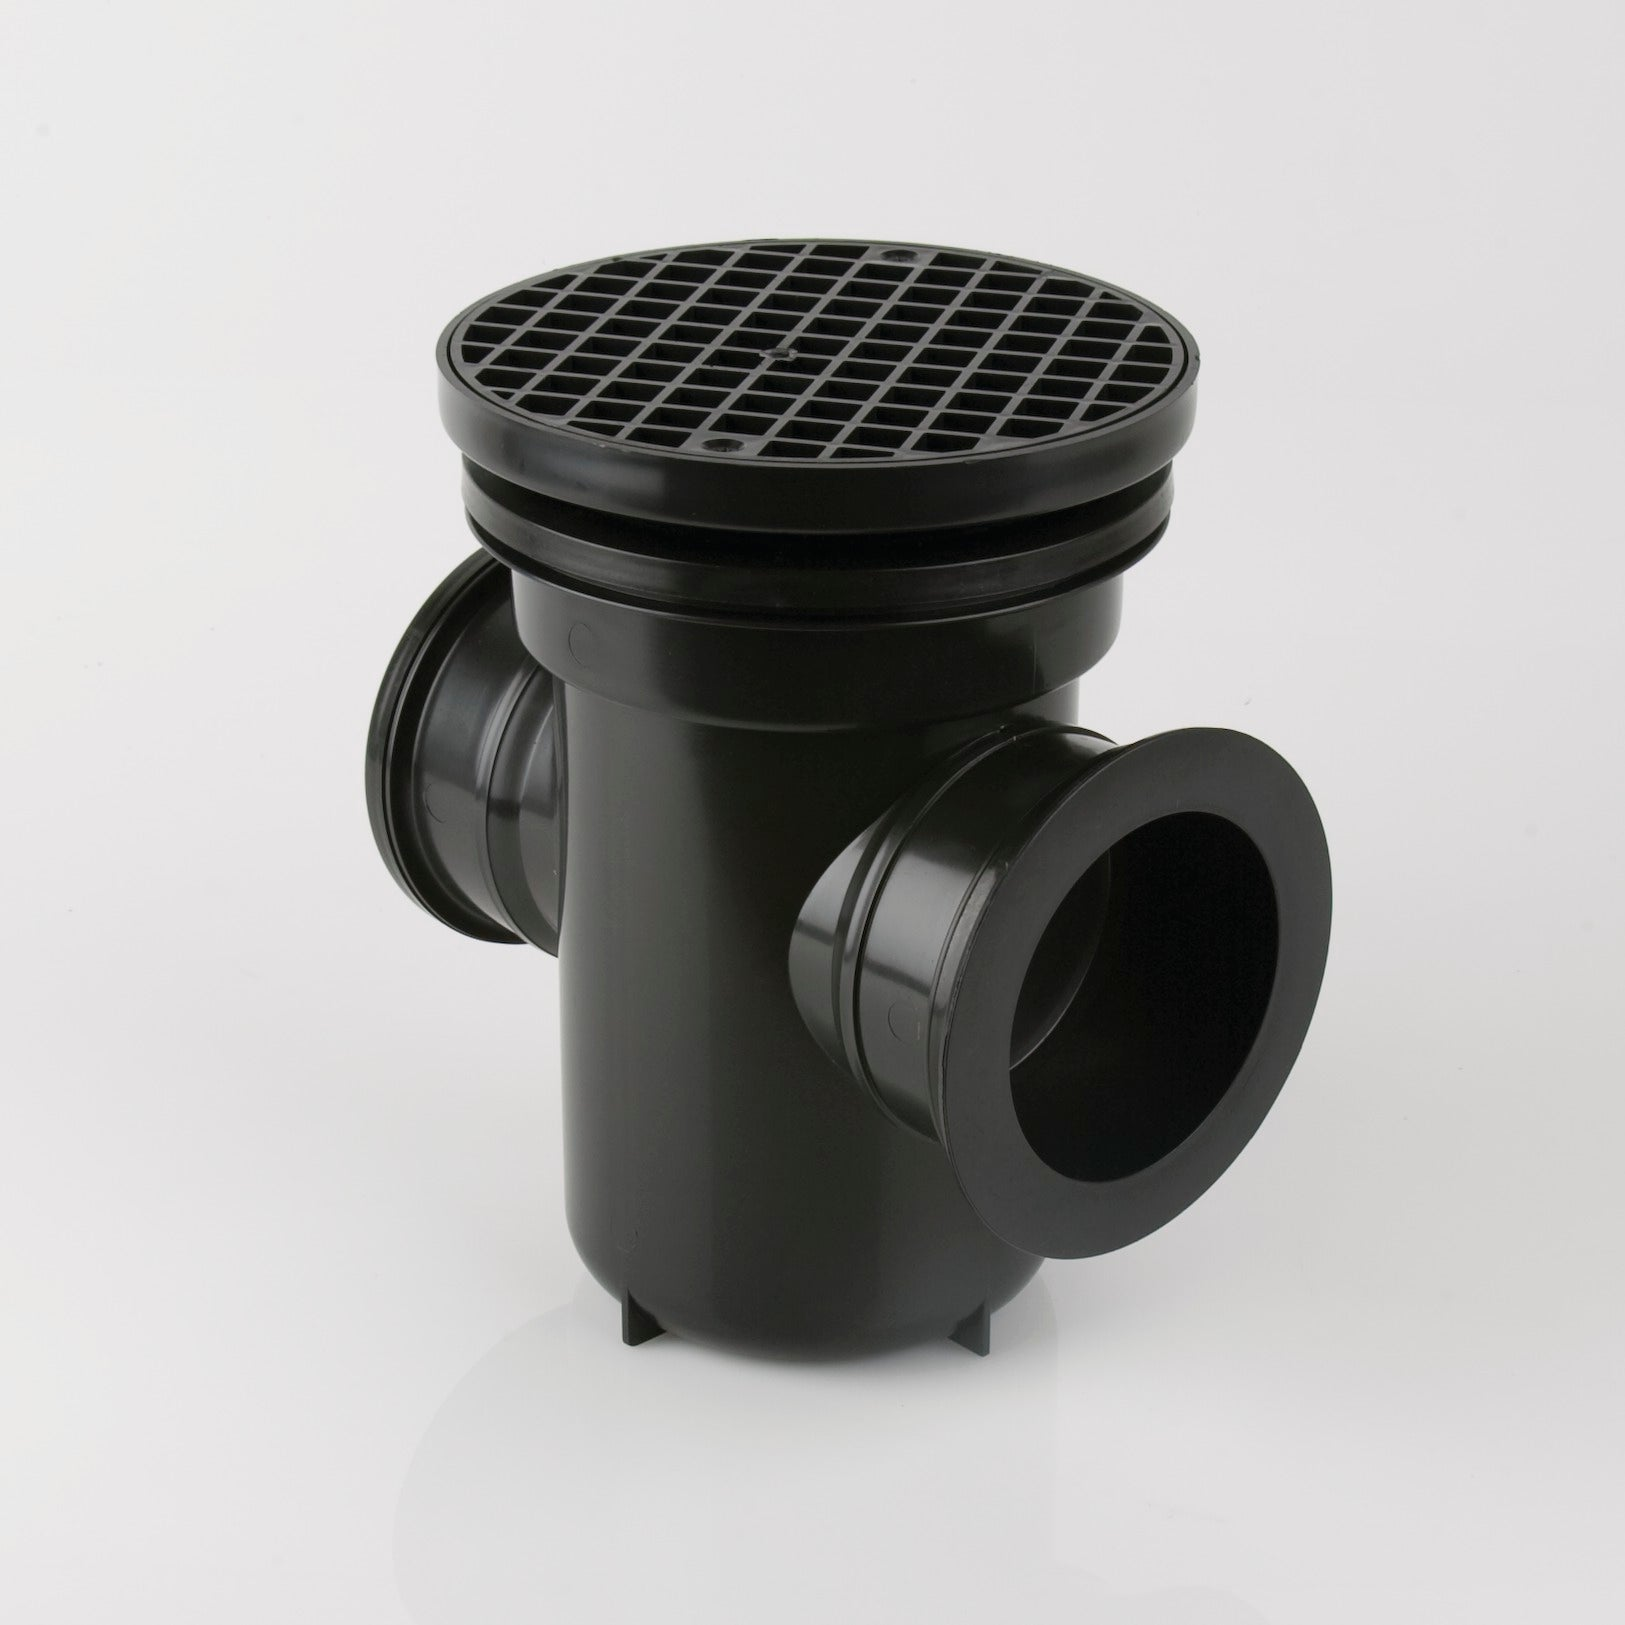 90 Degree Back Inlet Roddable Gully Outlet (Round Grid | Black)